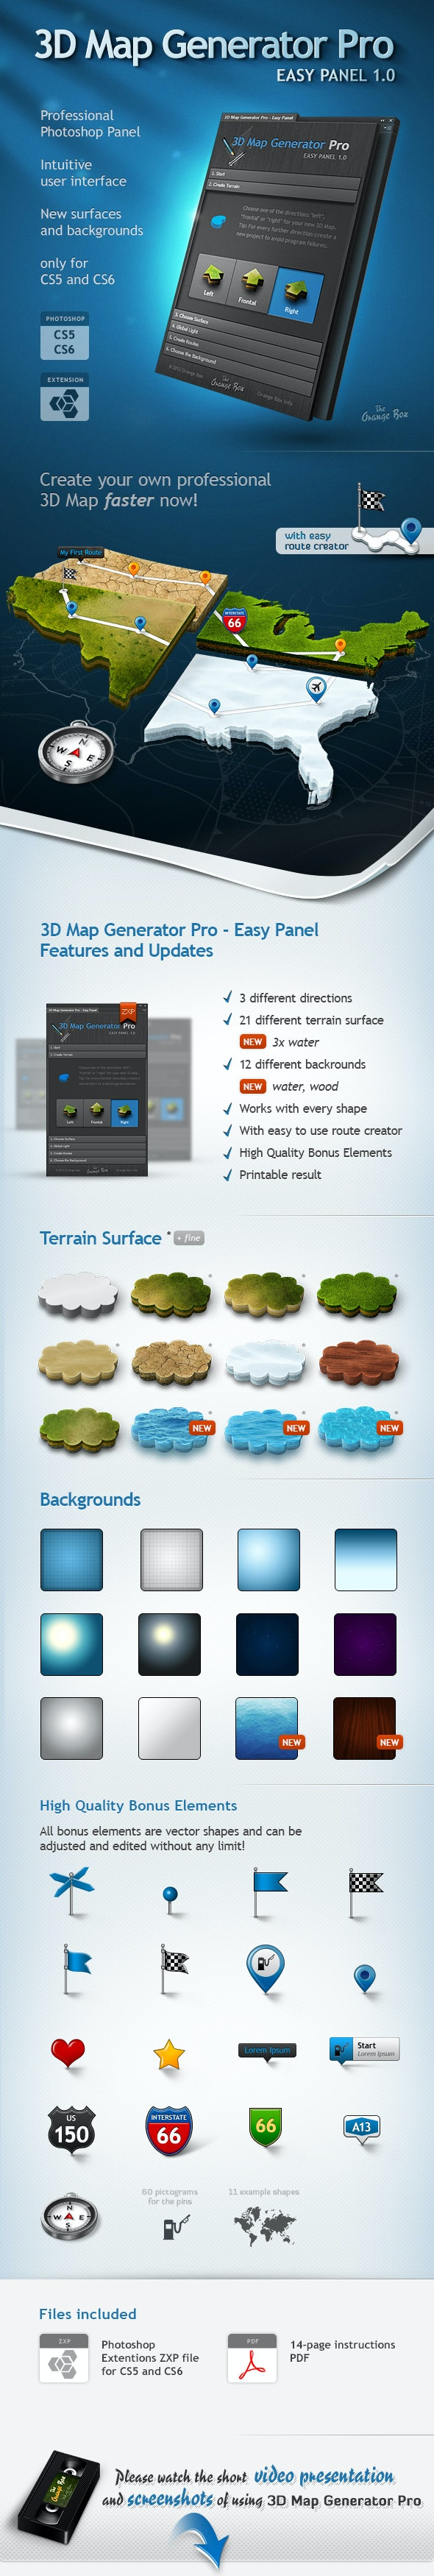 3D Map Generator Pro - Easy Panel by Orange_Box | GraphicRiver